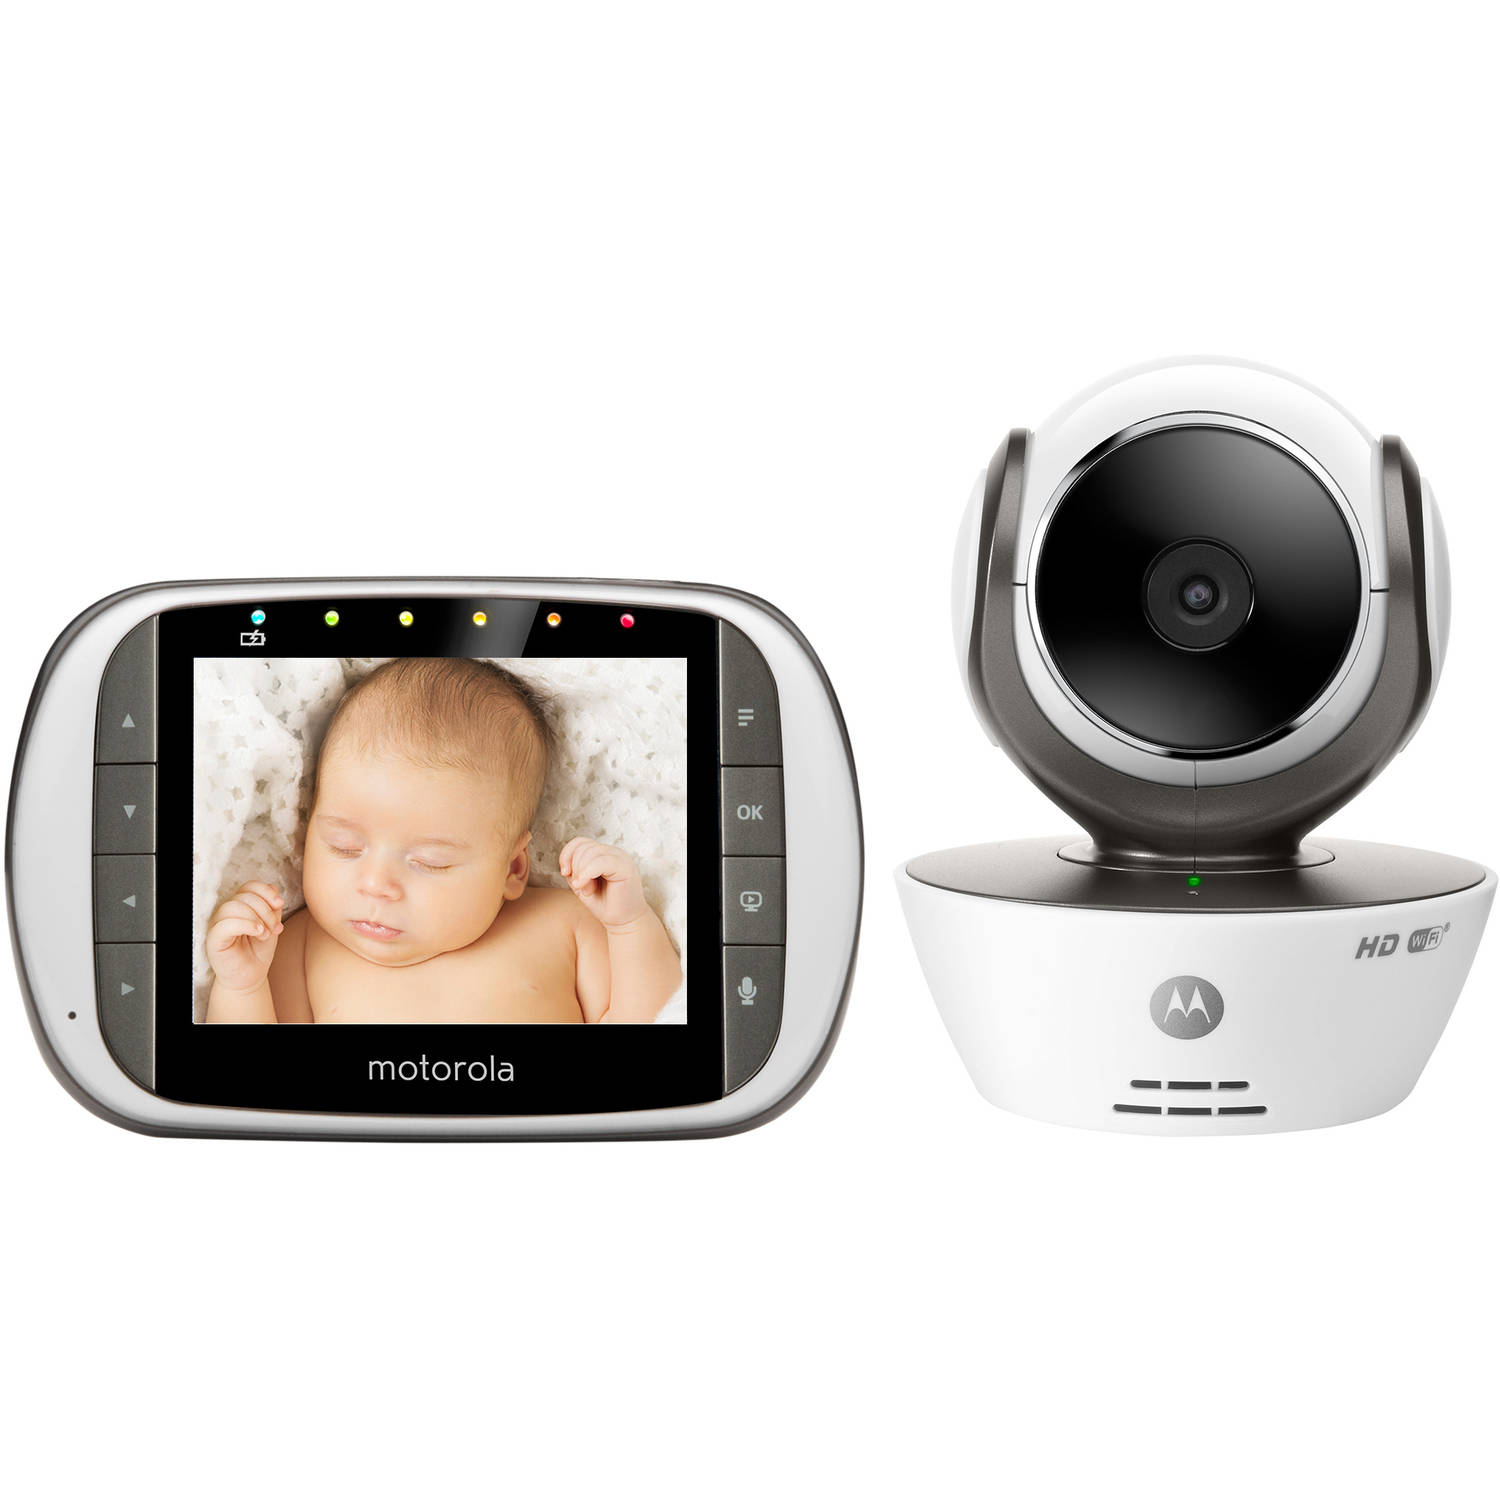 Motorola MBP853CONNECT Digital Video Baby Monitor with Wi-Fi Internet Viewing